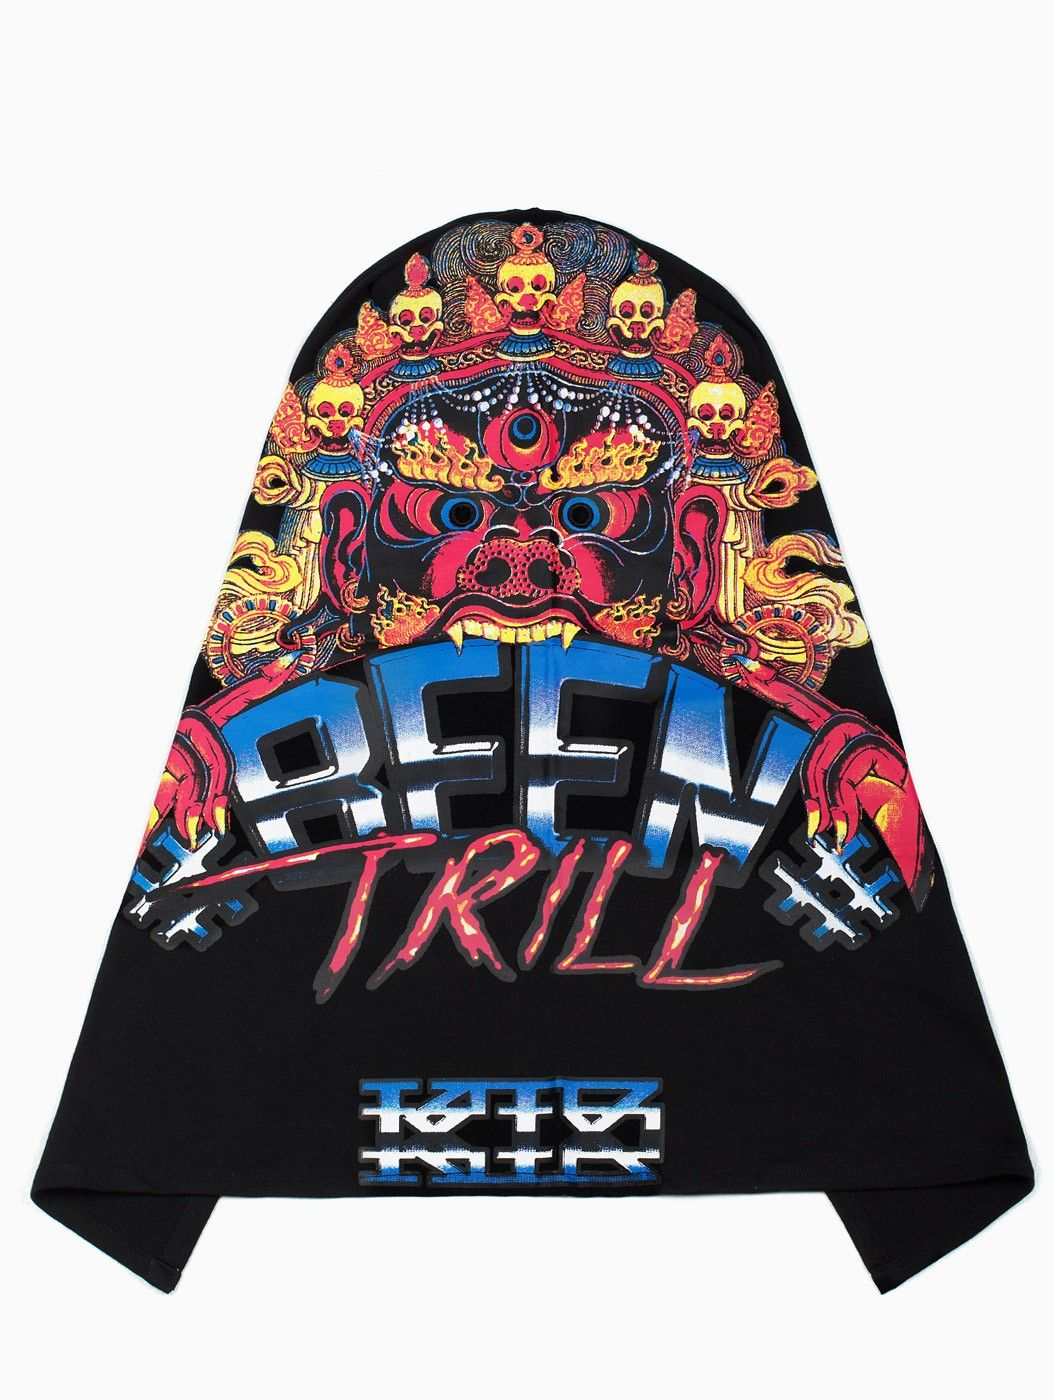 Tibet Monster Mask from F/W2014-15 KTZ x Been Trill capsule collection in black